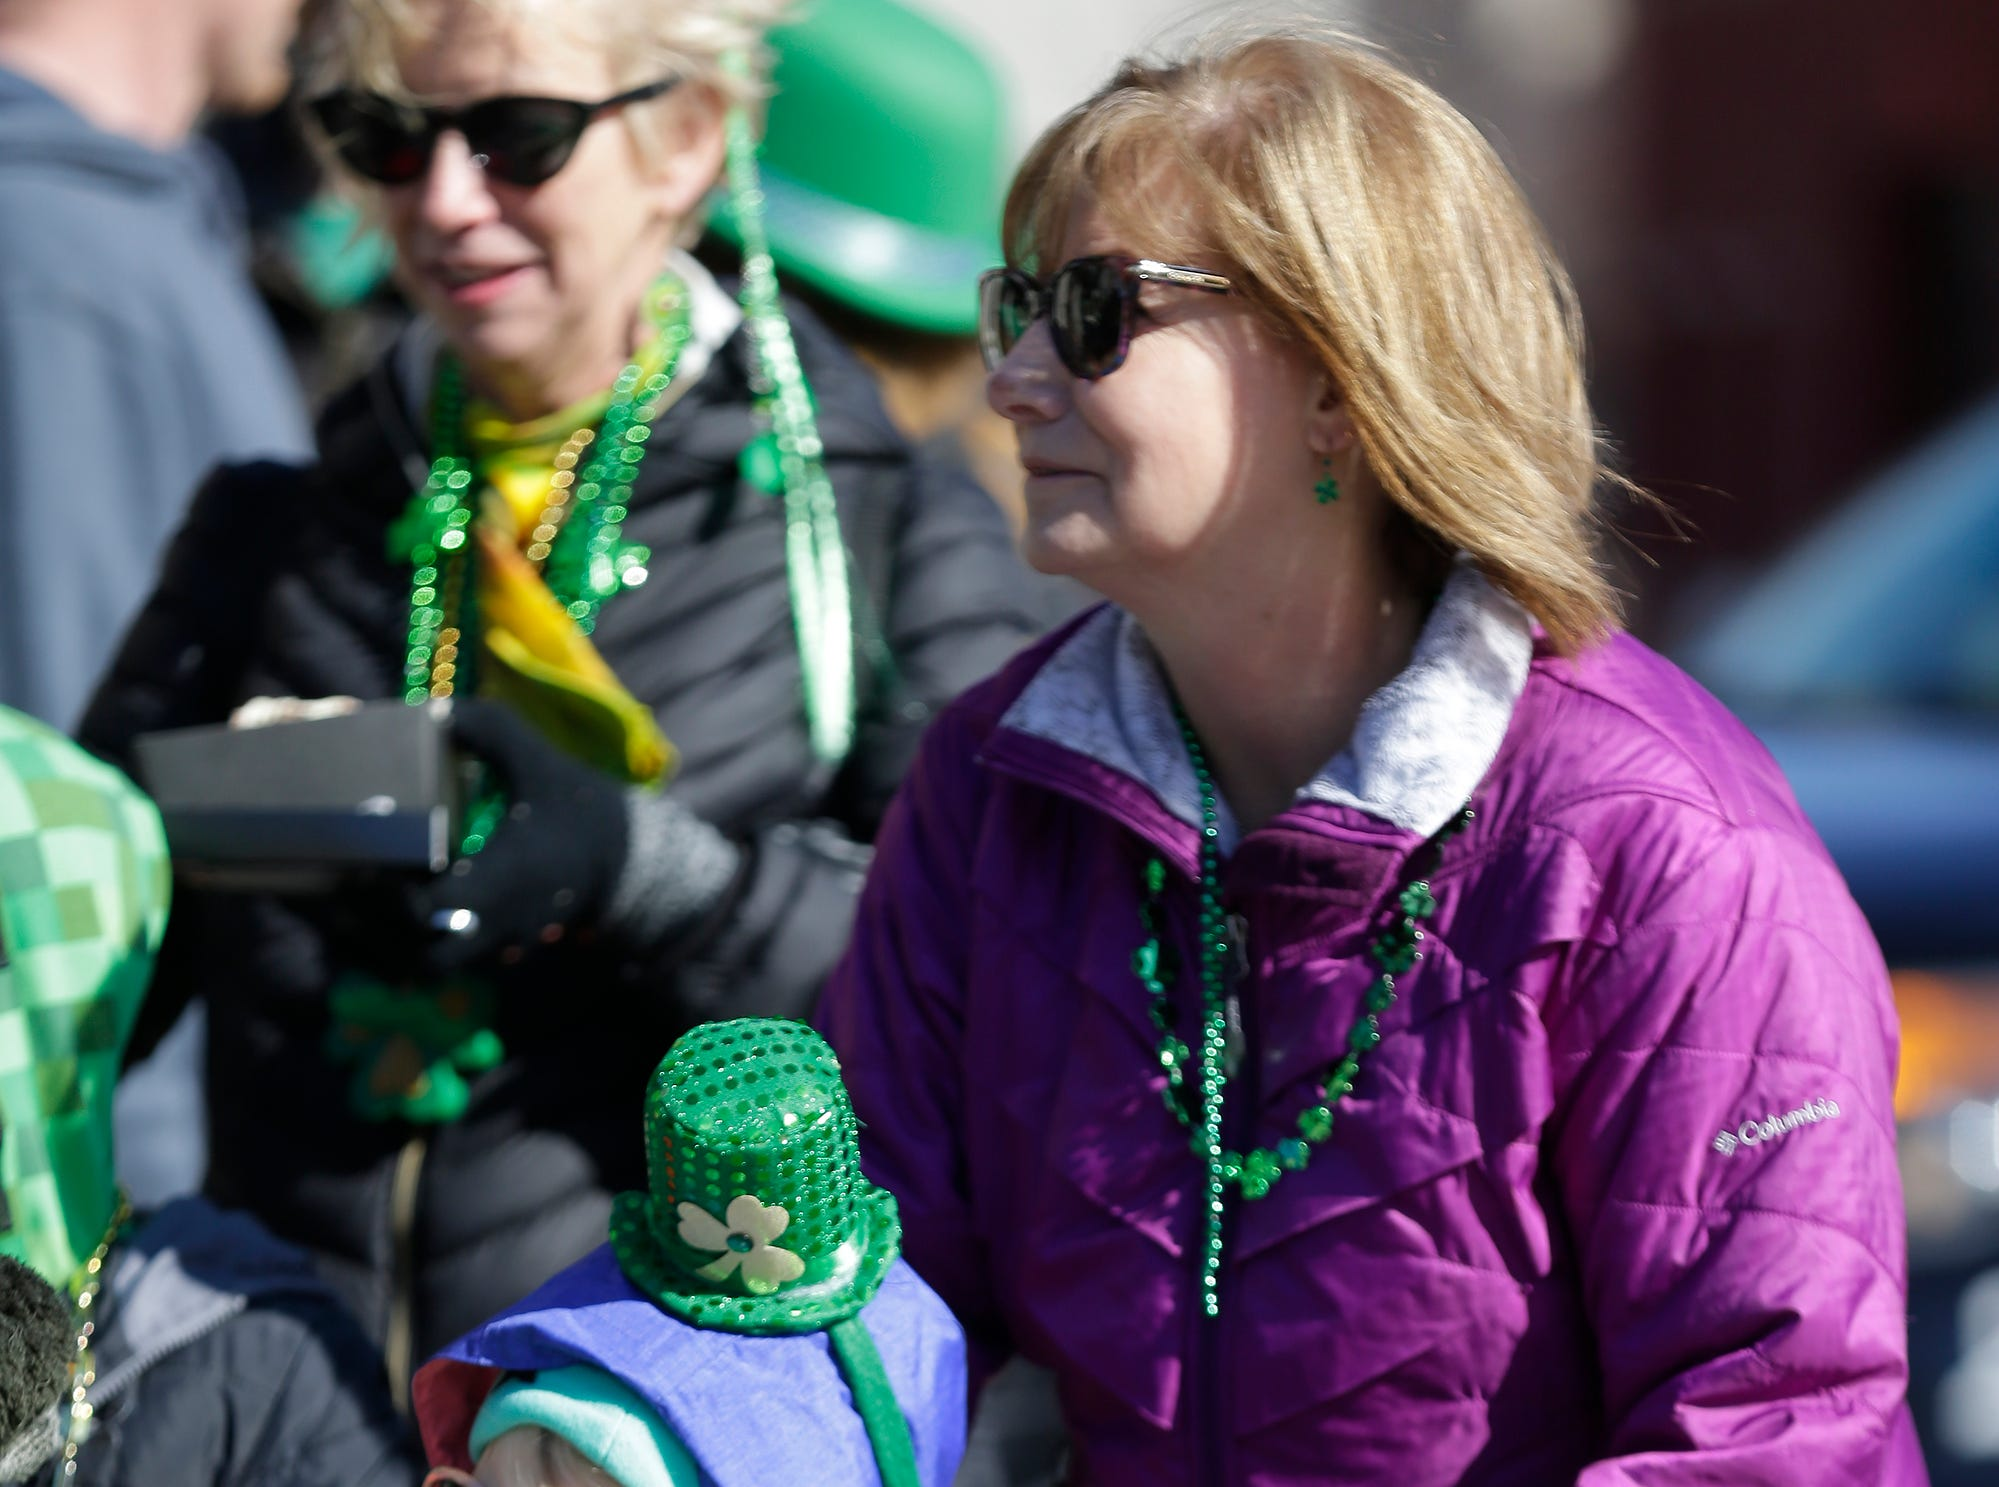 Jada Resop and Renee Lesa of Fond du Lac watch the City of Fond du Lac St. Patrick's Day Parade Saturday, March 16, 2019 on Main Street in downtown Fond du Lac. Hundreds of people lined the street to watch over 50 parade participants. Doug Raflik/USA TODAY NETWORK-Wisconsin